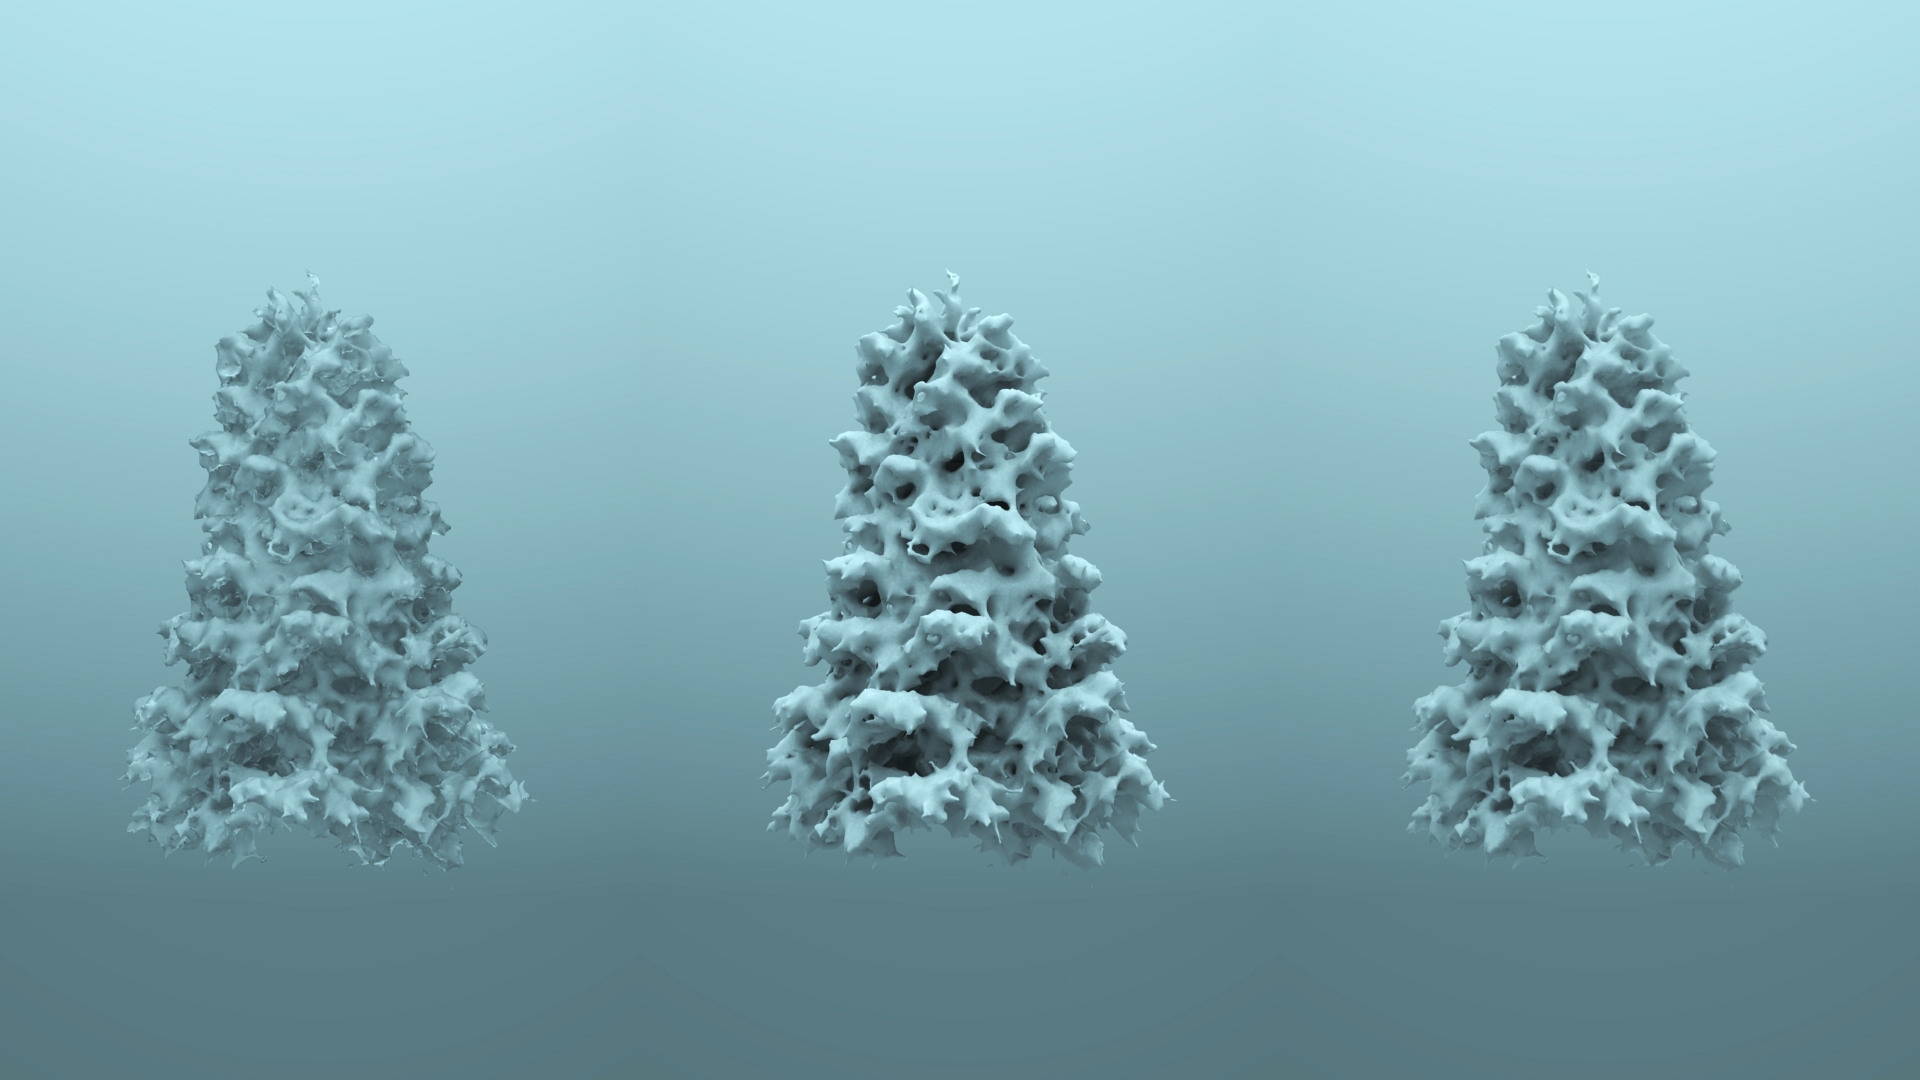 From left to right: refractive frozen ice, powdery diffuse, 50-50 blend